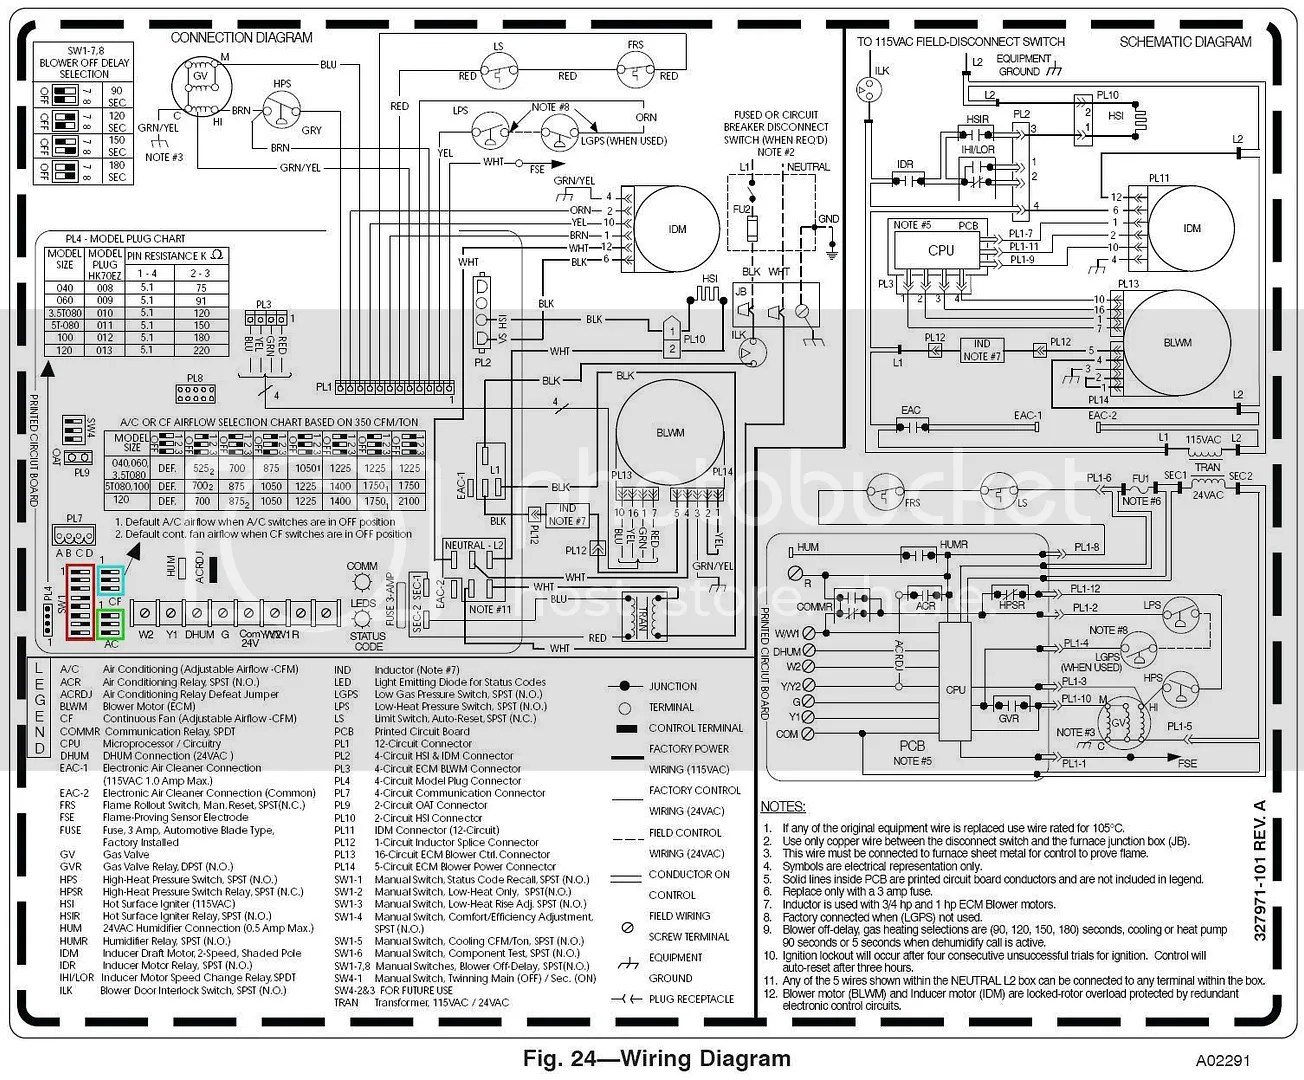 Ge x13 motor wiring diagram new wiring diagram 2018 ge x13 motor wiring diagram dolgular com ge dryer wiring diagram online ge x13 control module ge dc motor wiring diagram on ge x13 motor wiring diagram sciox Image collections